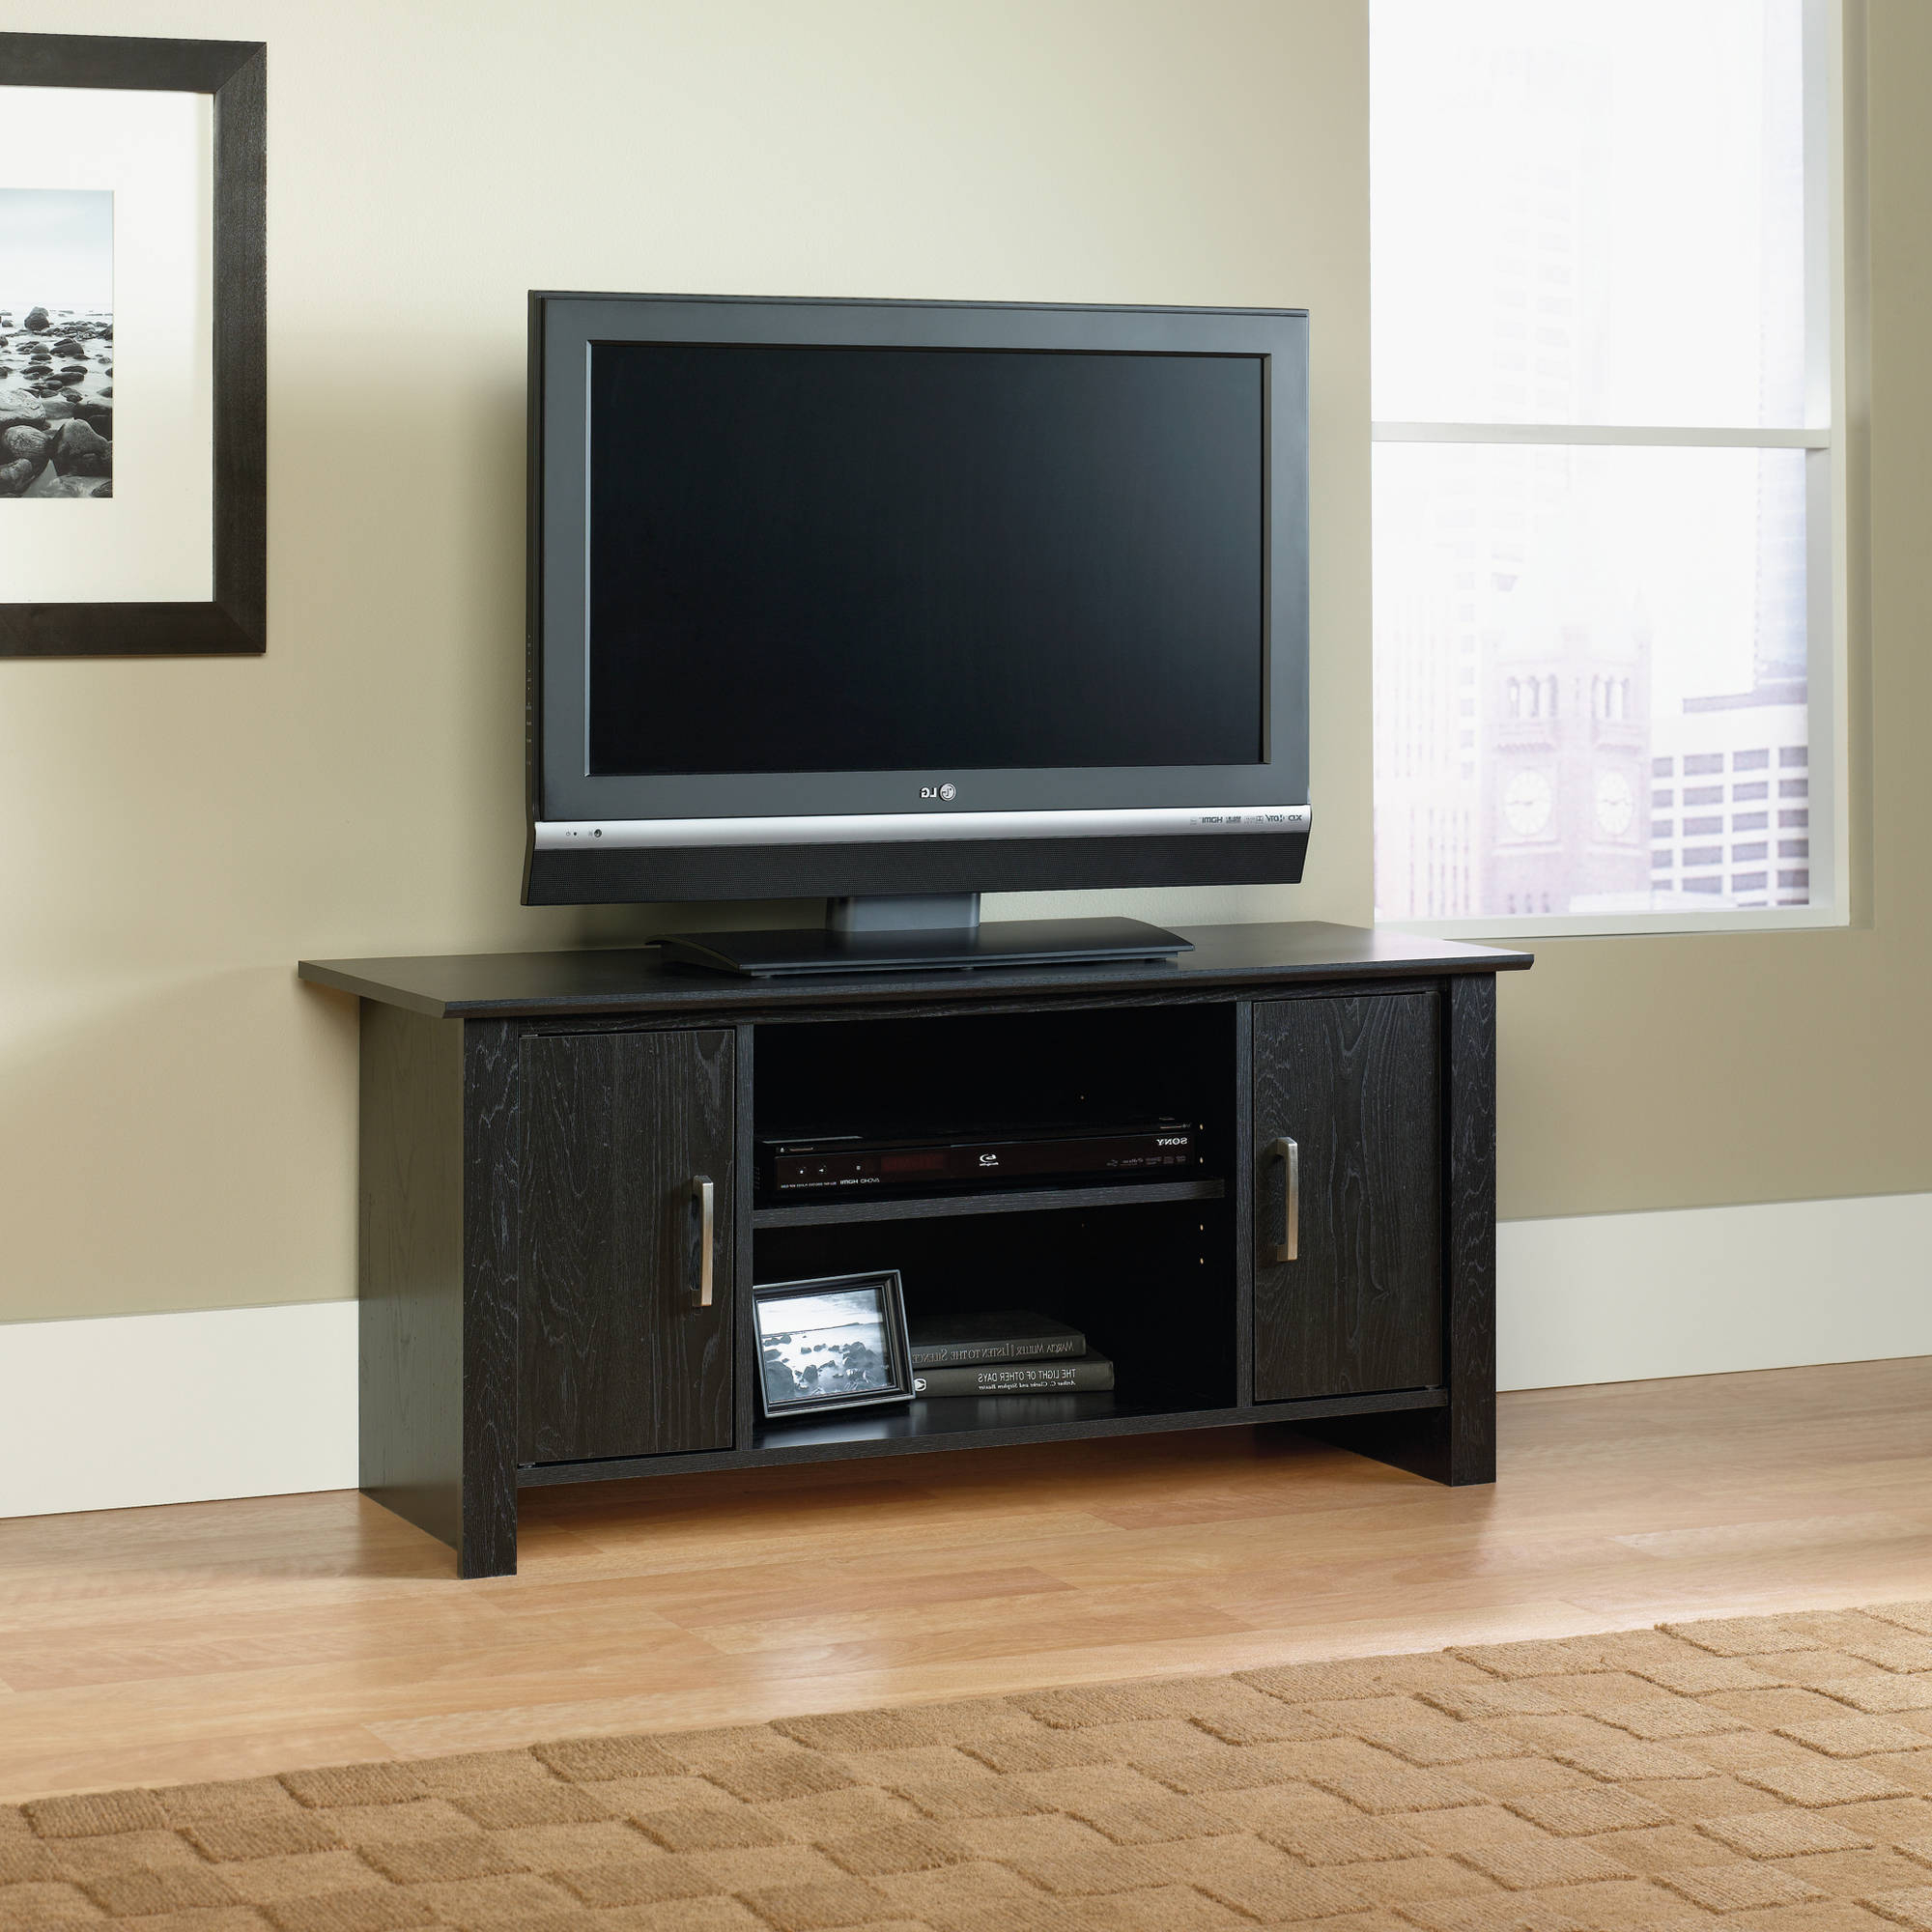 Favorite Tv Stand 55 Inch Walmart Cheap Tall Corner Flat Screen Stands Wood In Wooden Tv Stands For 55 Inch Flat Screen (View 5 of 20)